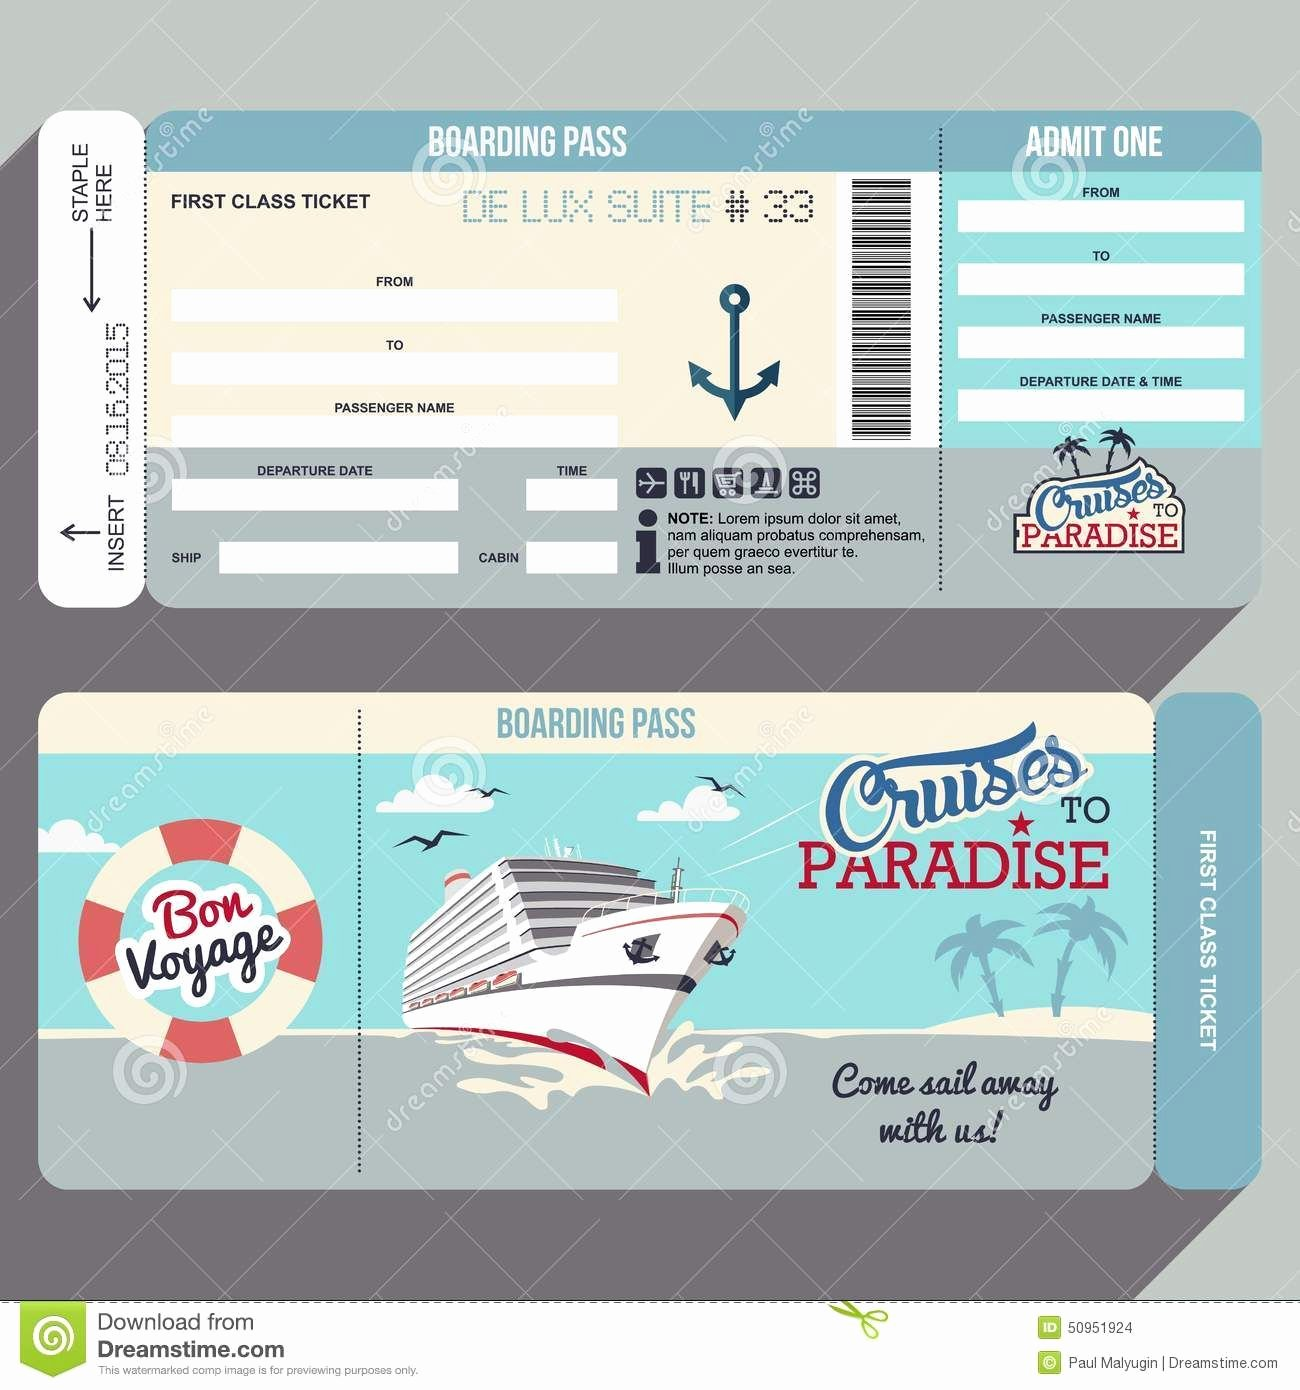 Boarding Pass Template Free New Cruises to Paradise Boarding Pass Design